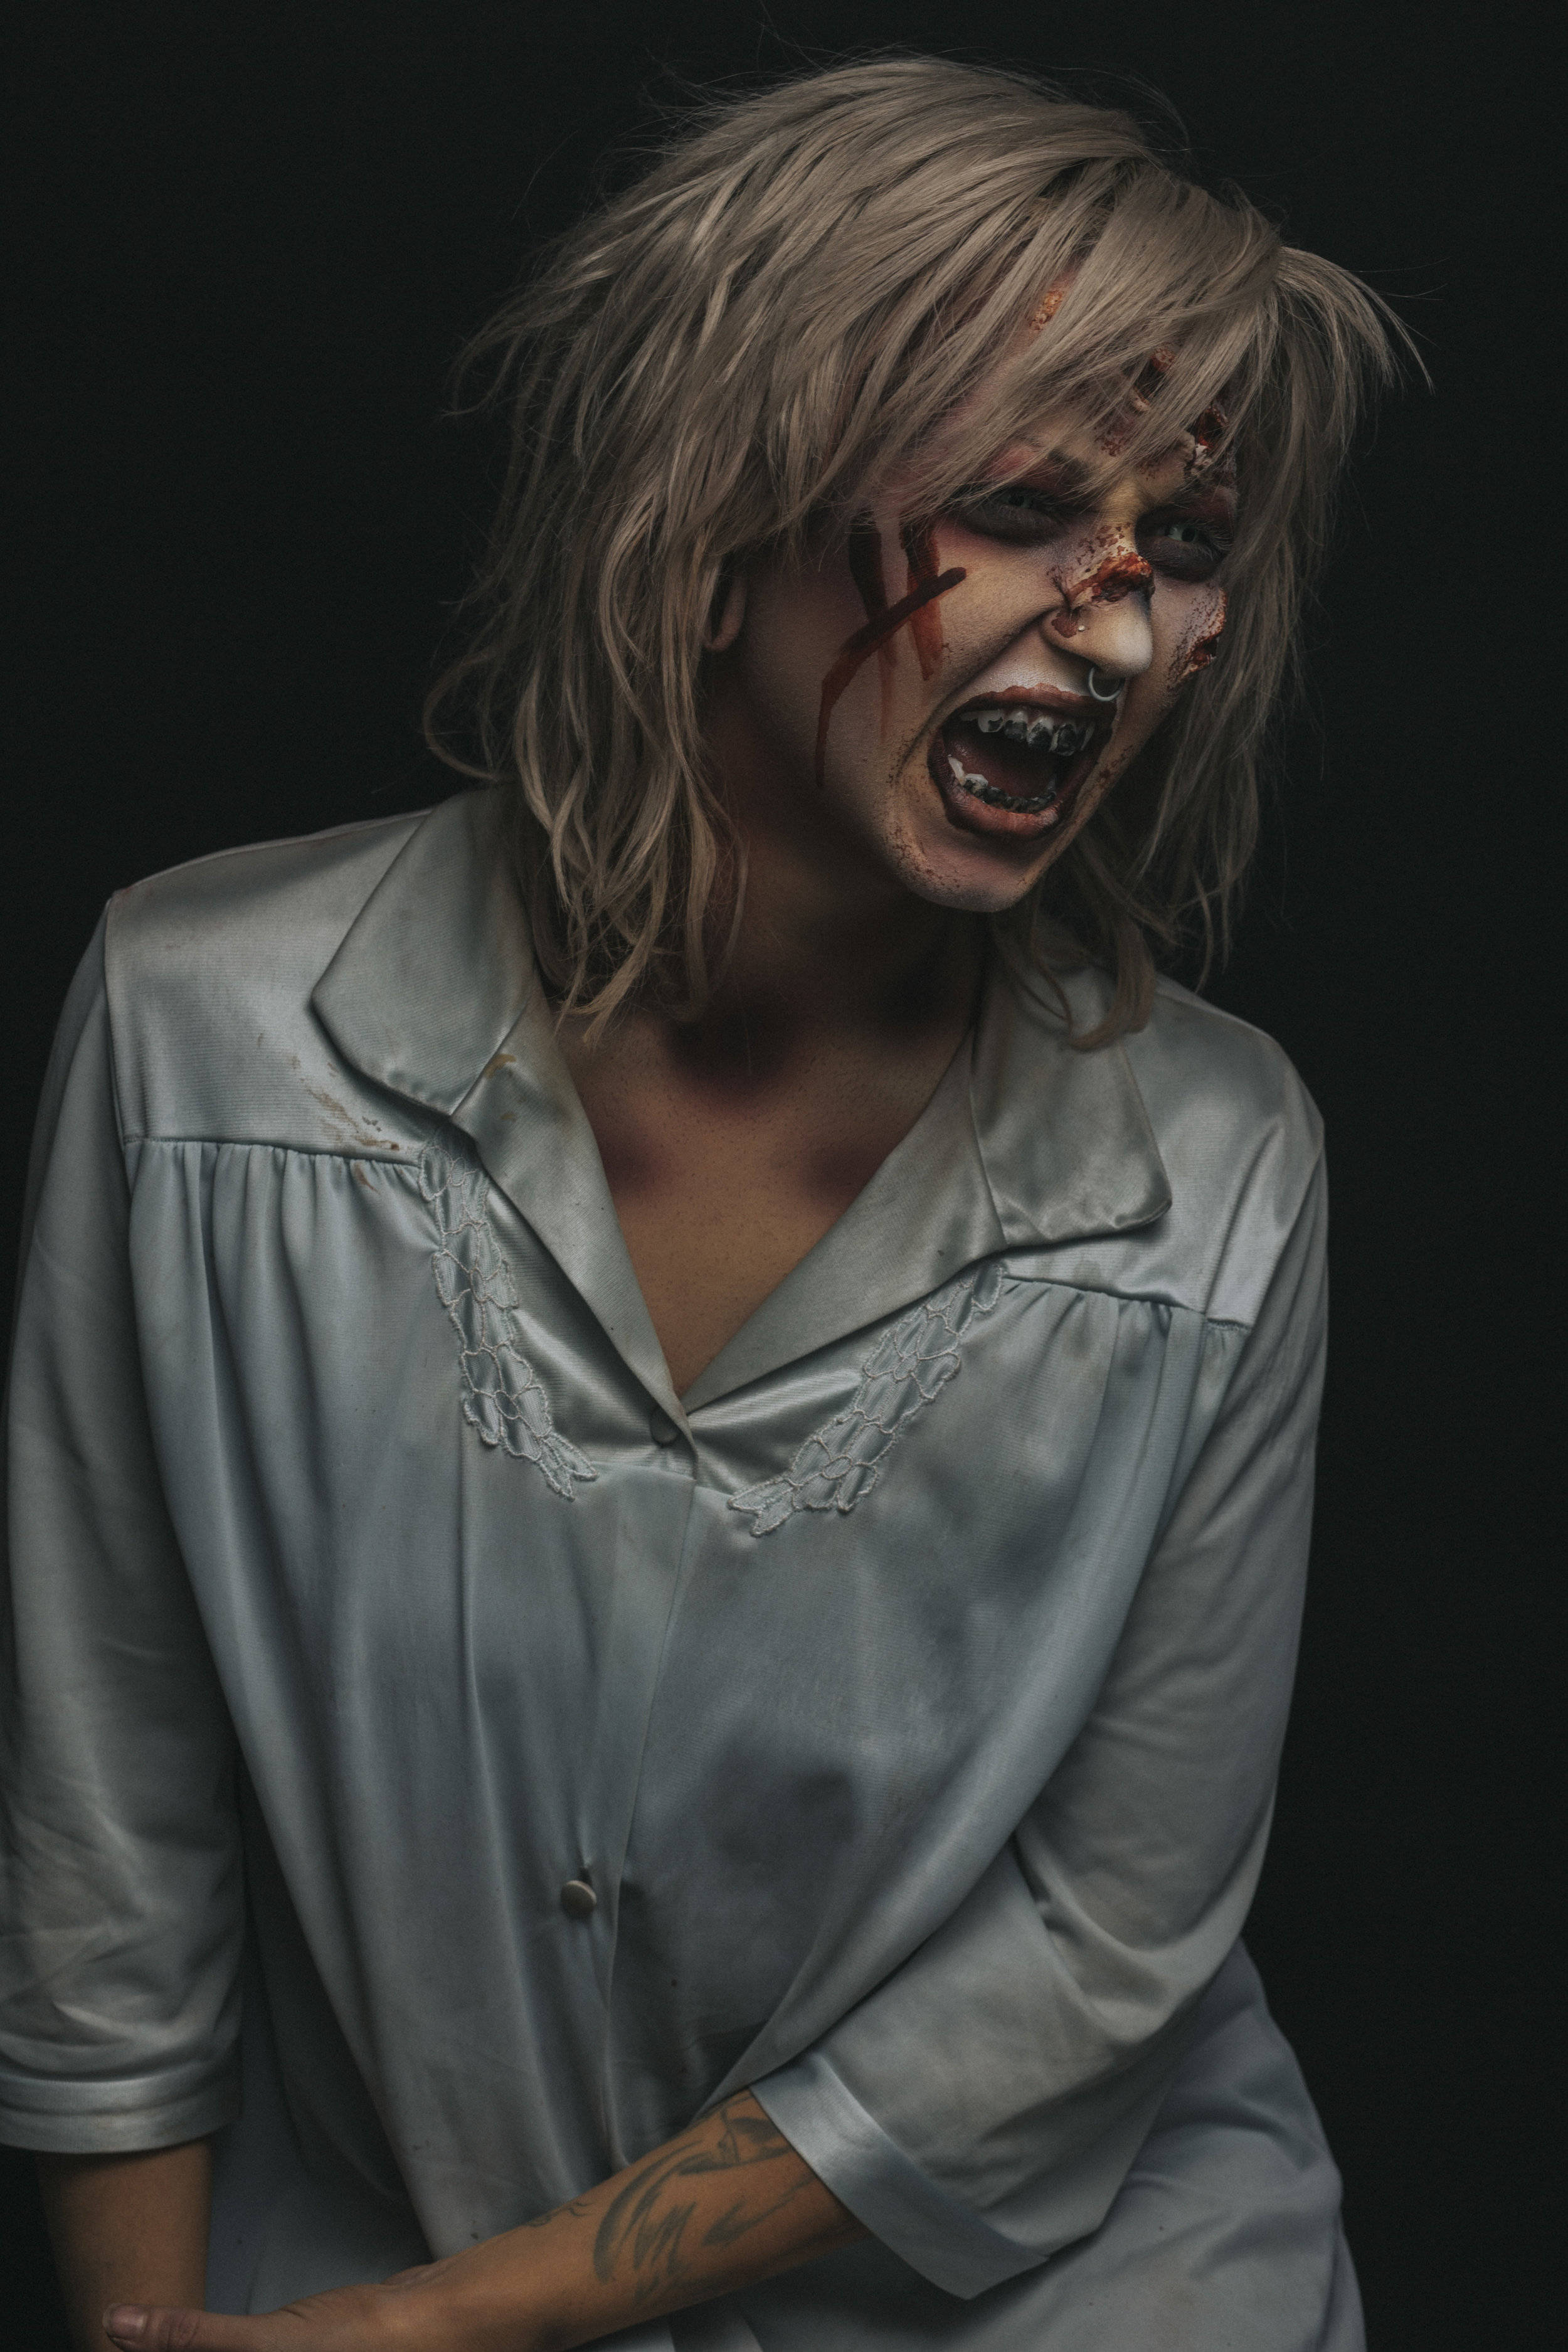 The Exorcist is one of my favorite scary movies. It is so well acted and the cinematography is amazing. Not to mention Dick Smith did an amazing job on the make up. If I can even come close to a fraction of what he did I'll be happy. With all of that said I am pretty happy with this makeup and Sydni Whitman wears it well.